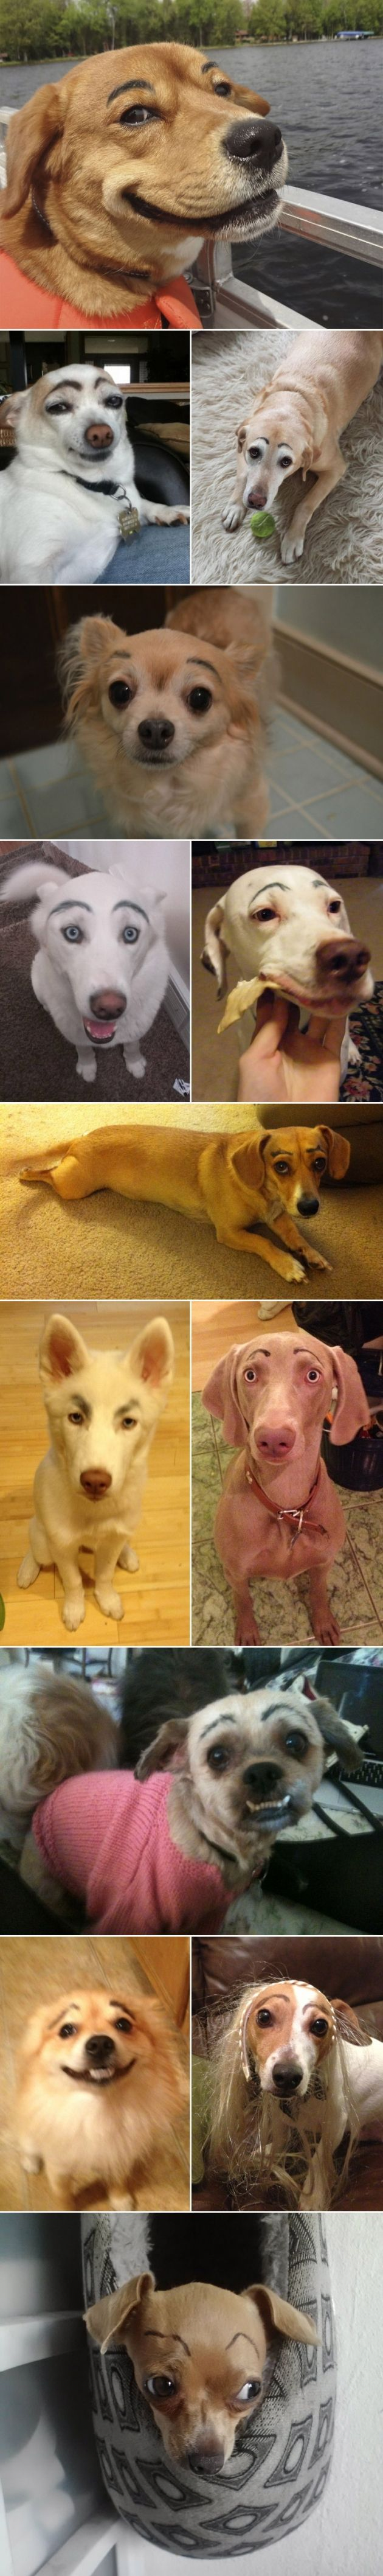 Dogs with eyebrows// It's weird my dog already has super thin ones. I always tell him to quit tweezing his brows. HAHA